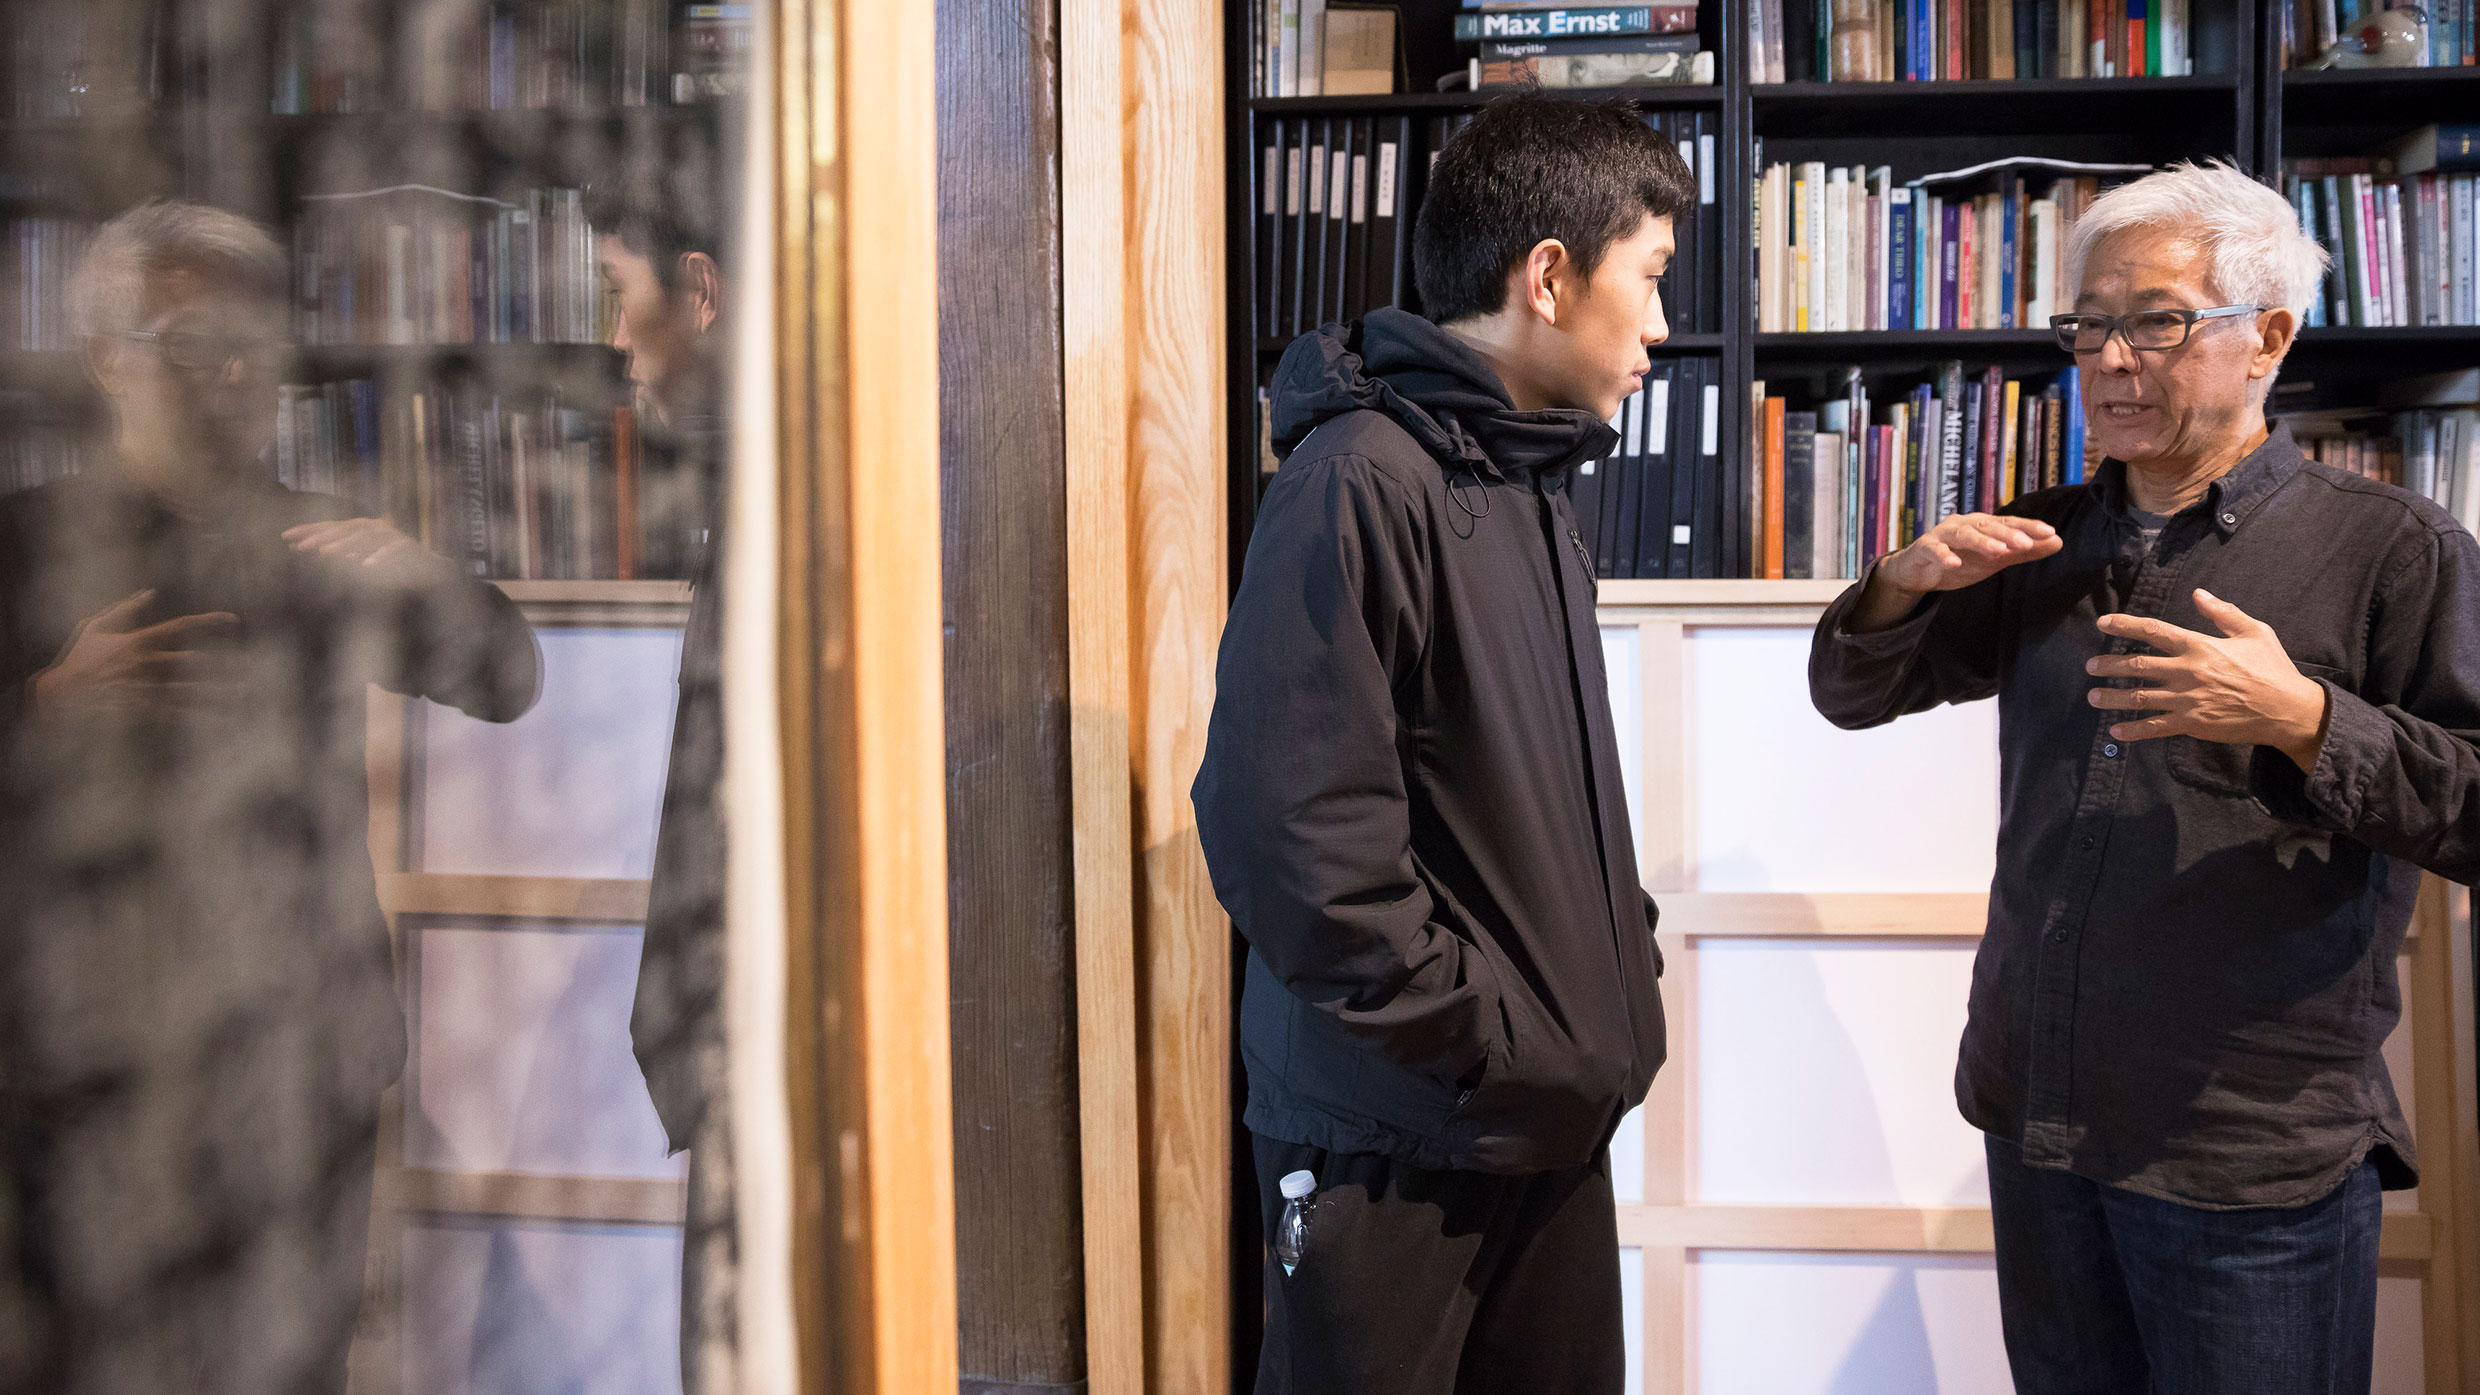 Artist Zhang Hongtu speaks with a high school student. Photo: Ben Hider © SRGF